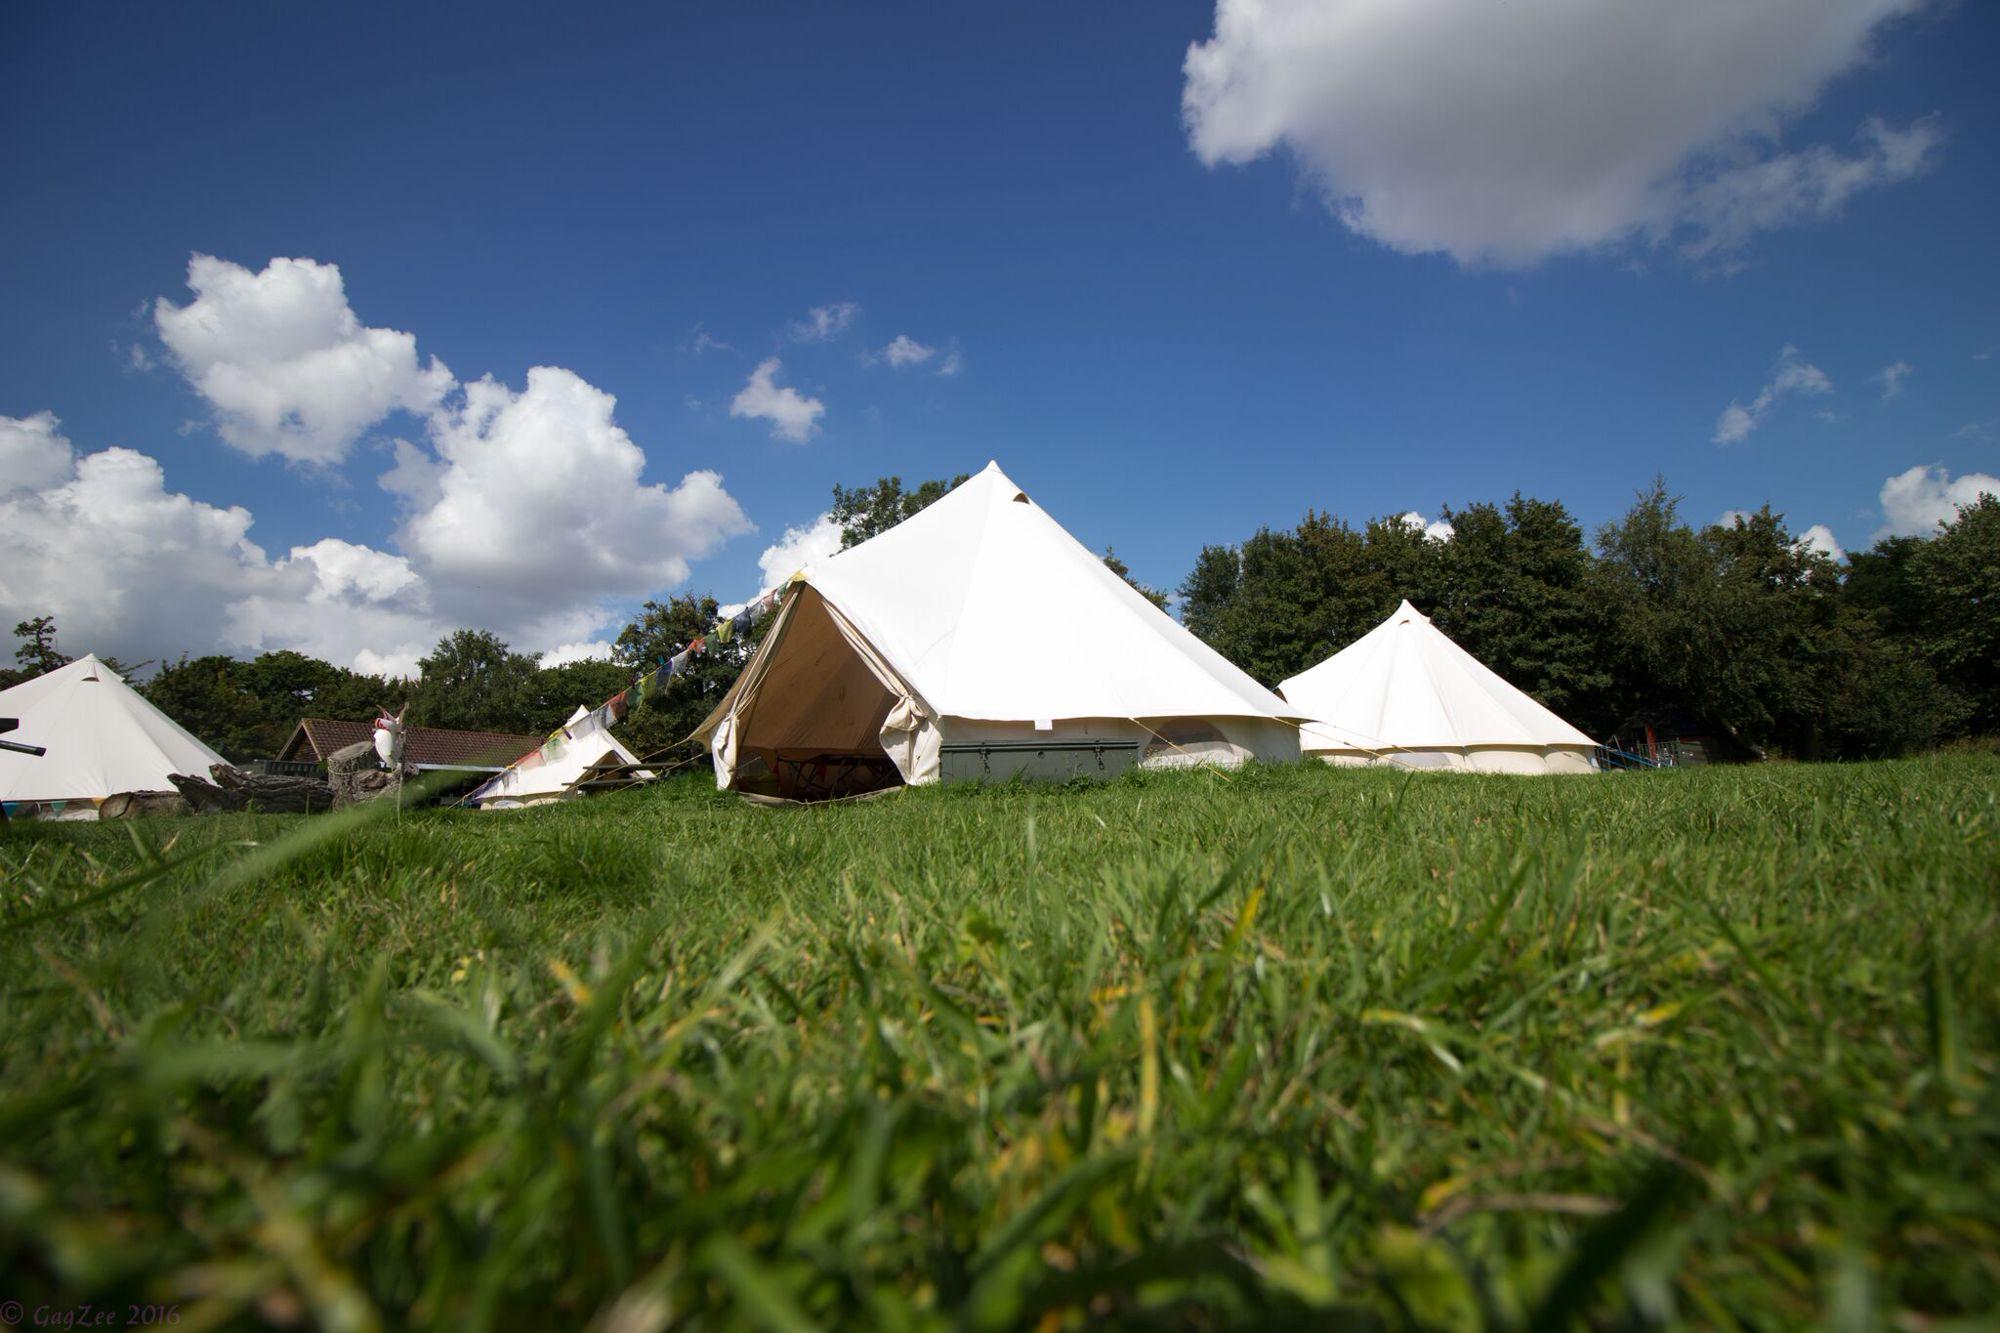 Stowmarket Camping | Campsites near Stowmarket, Suffolk